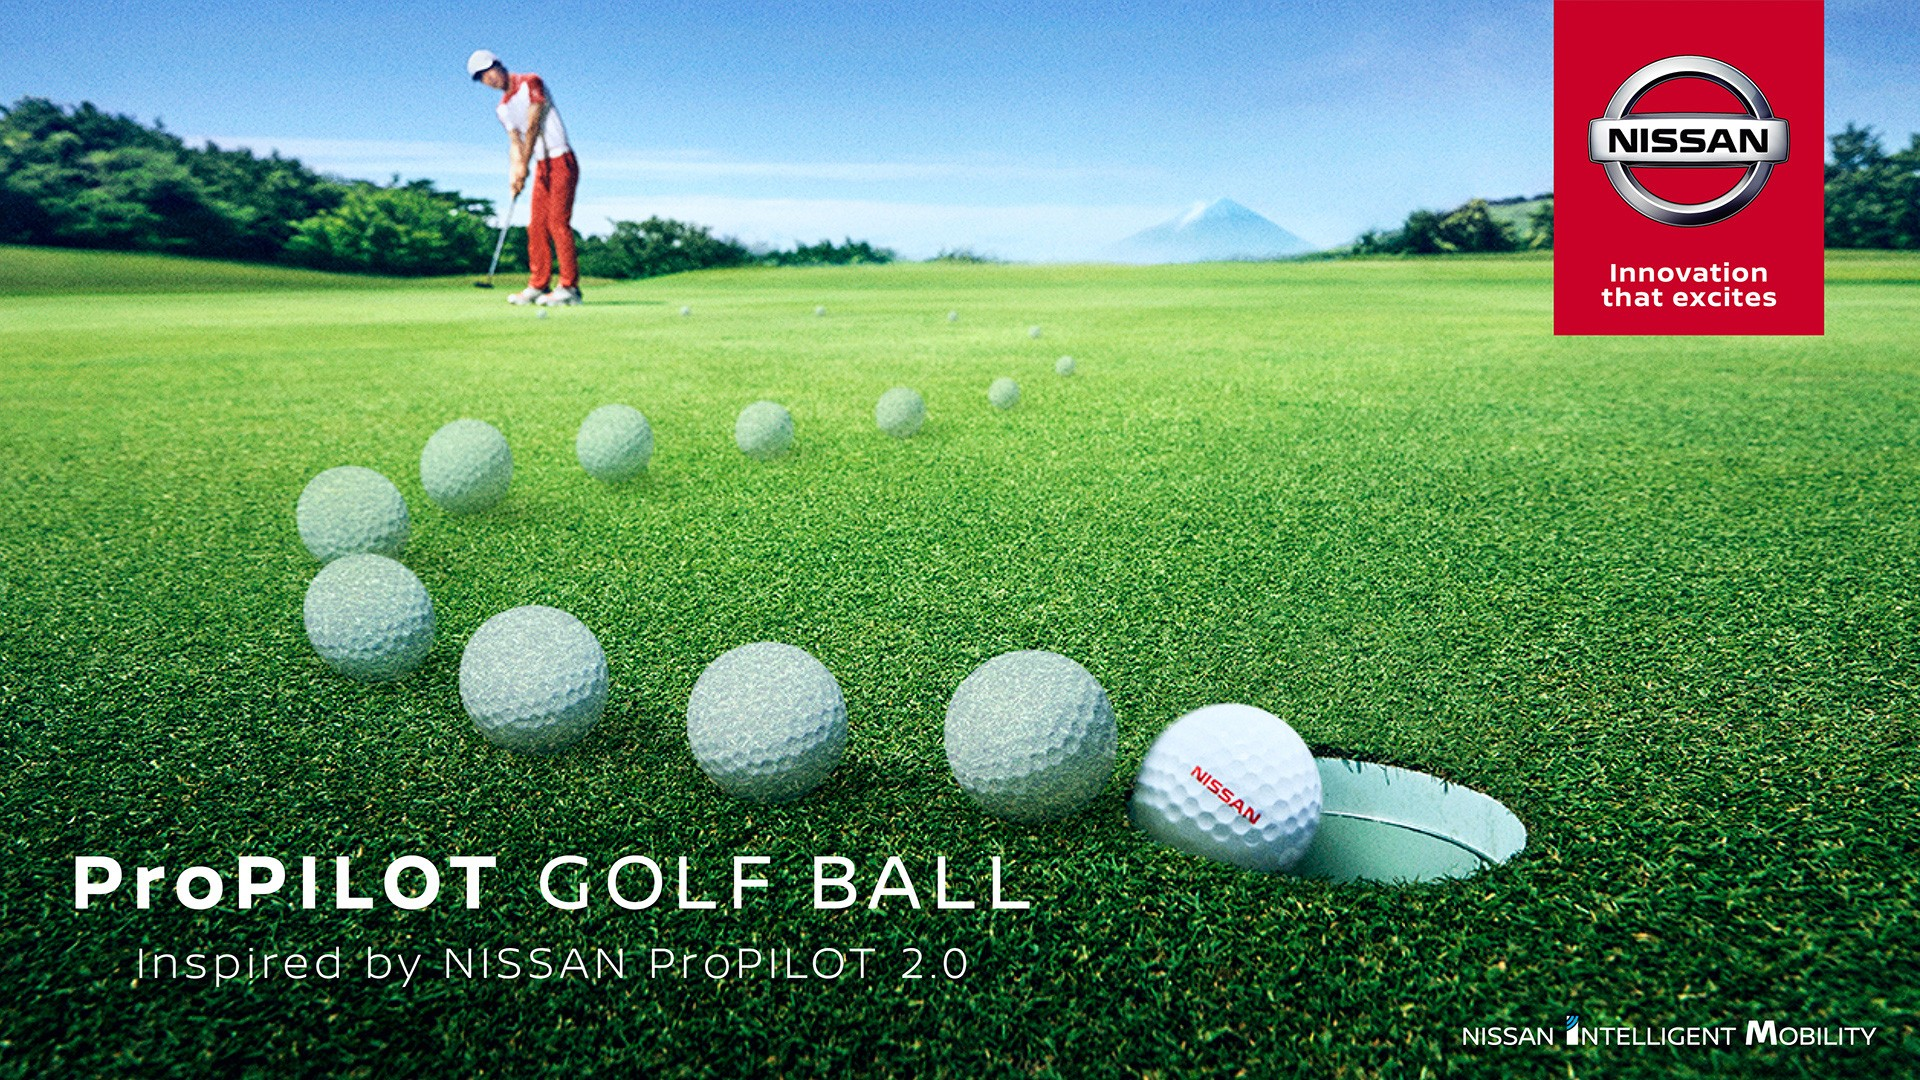 New golf ball will help you to make the putt every time